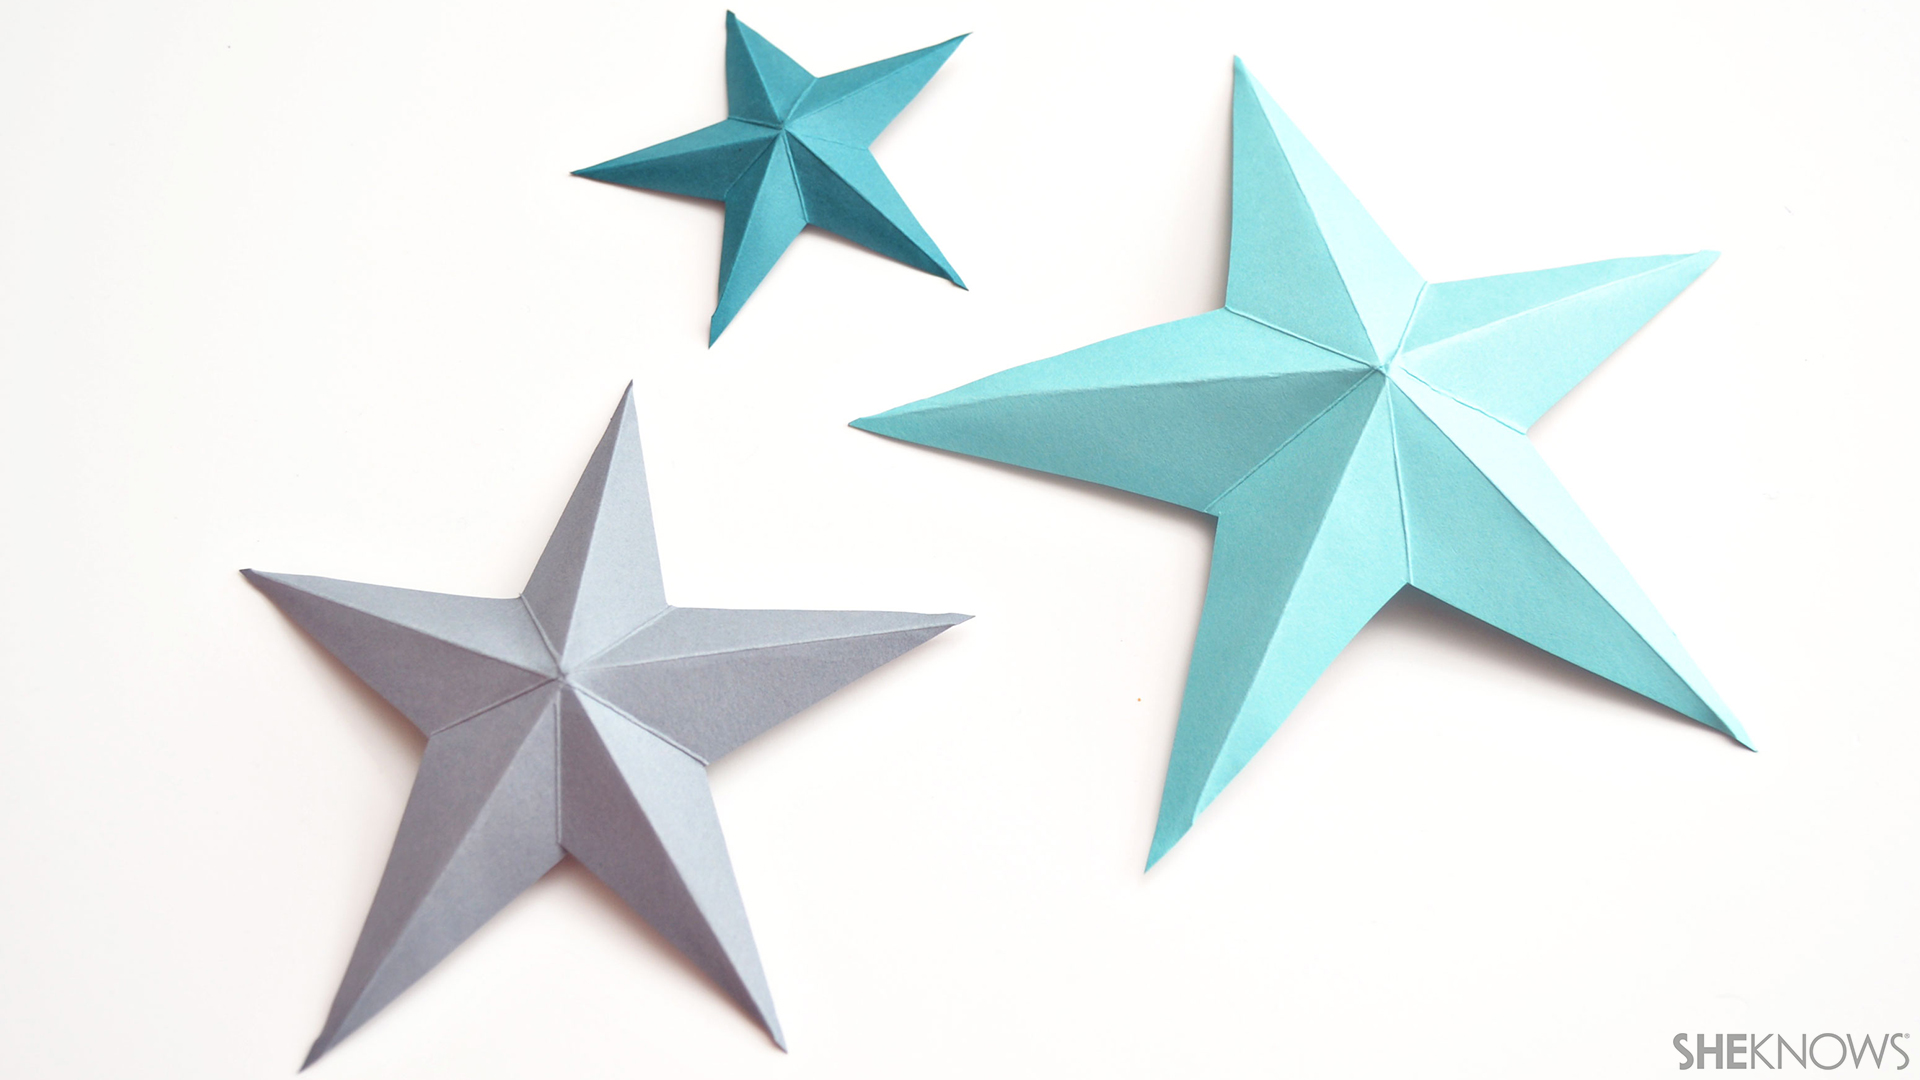 Turn a sheet of paper into 3-D fun